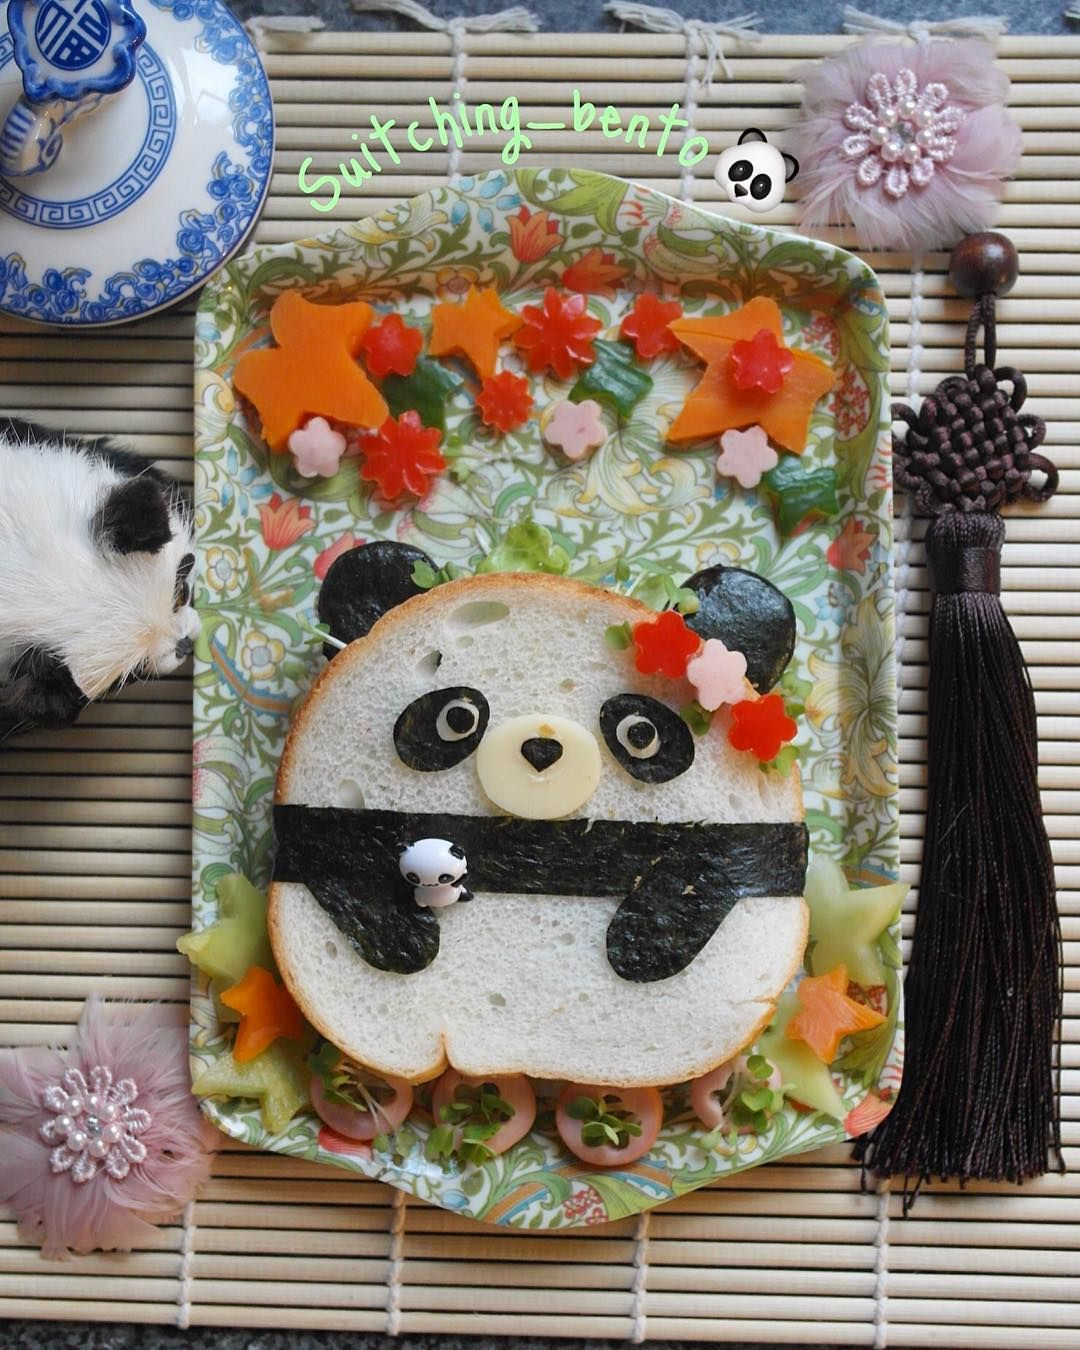 Suit-Ching WH 🇬🇧 (@suitching_bento) on Instagram: Panda sandwich with homemade luncheon meat bento